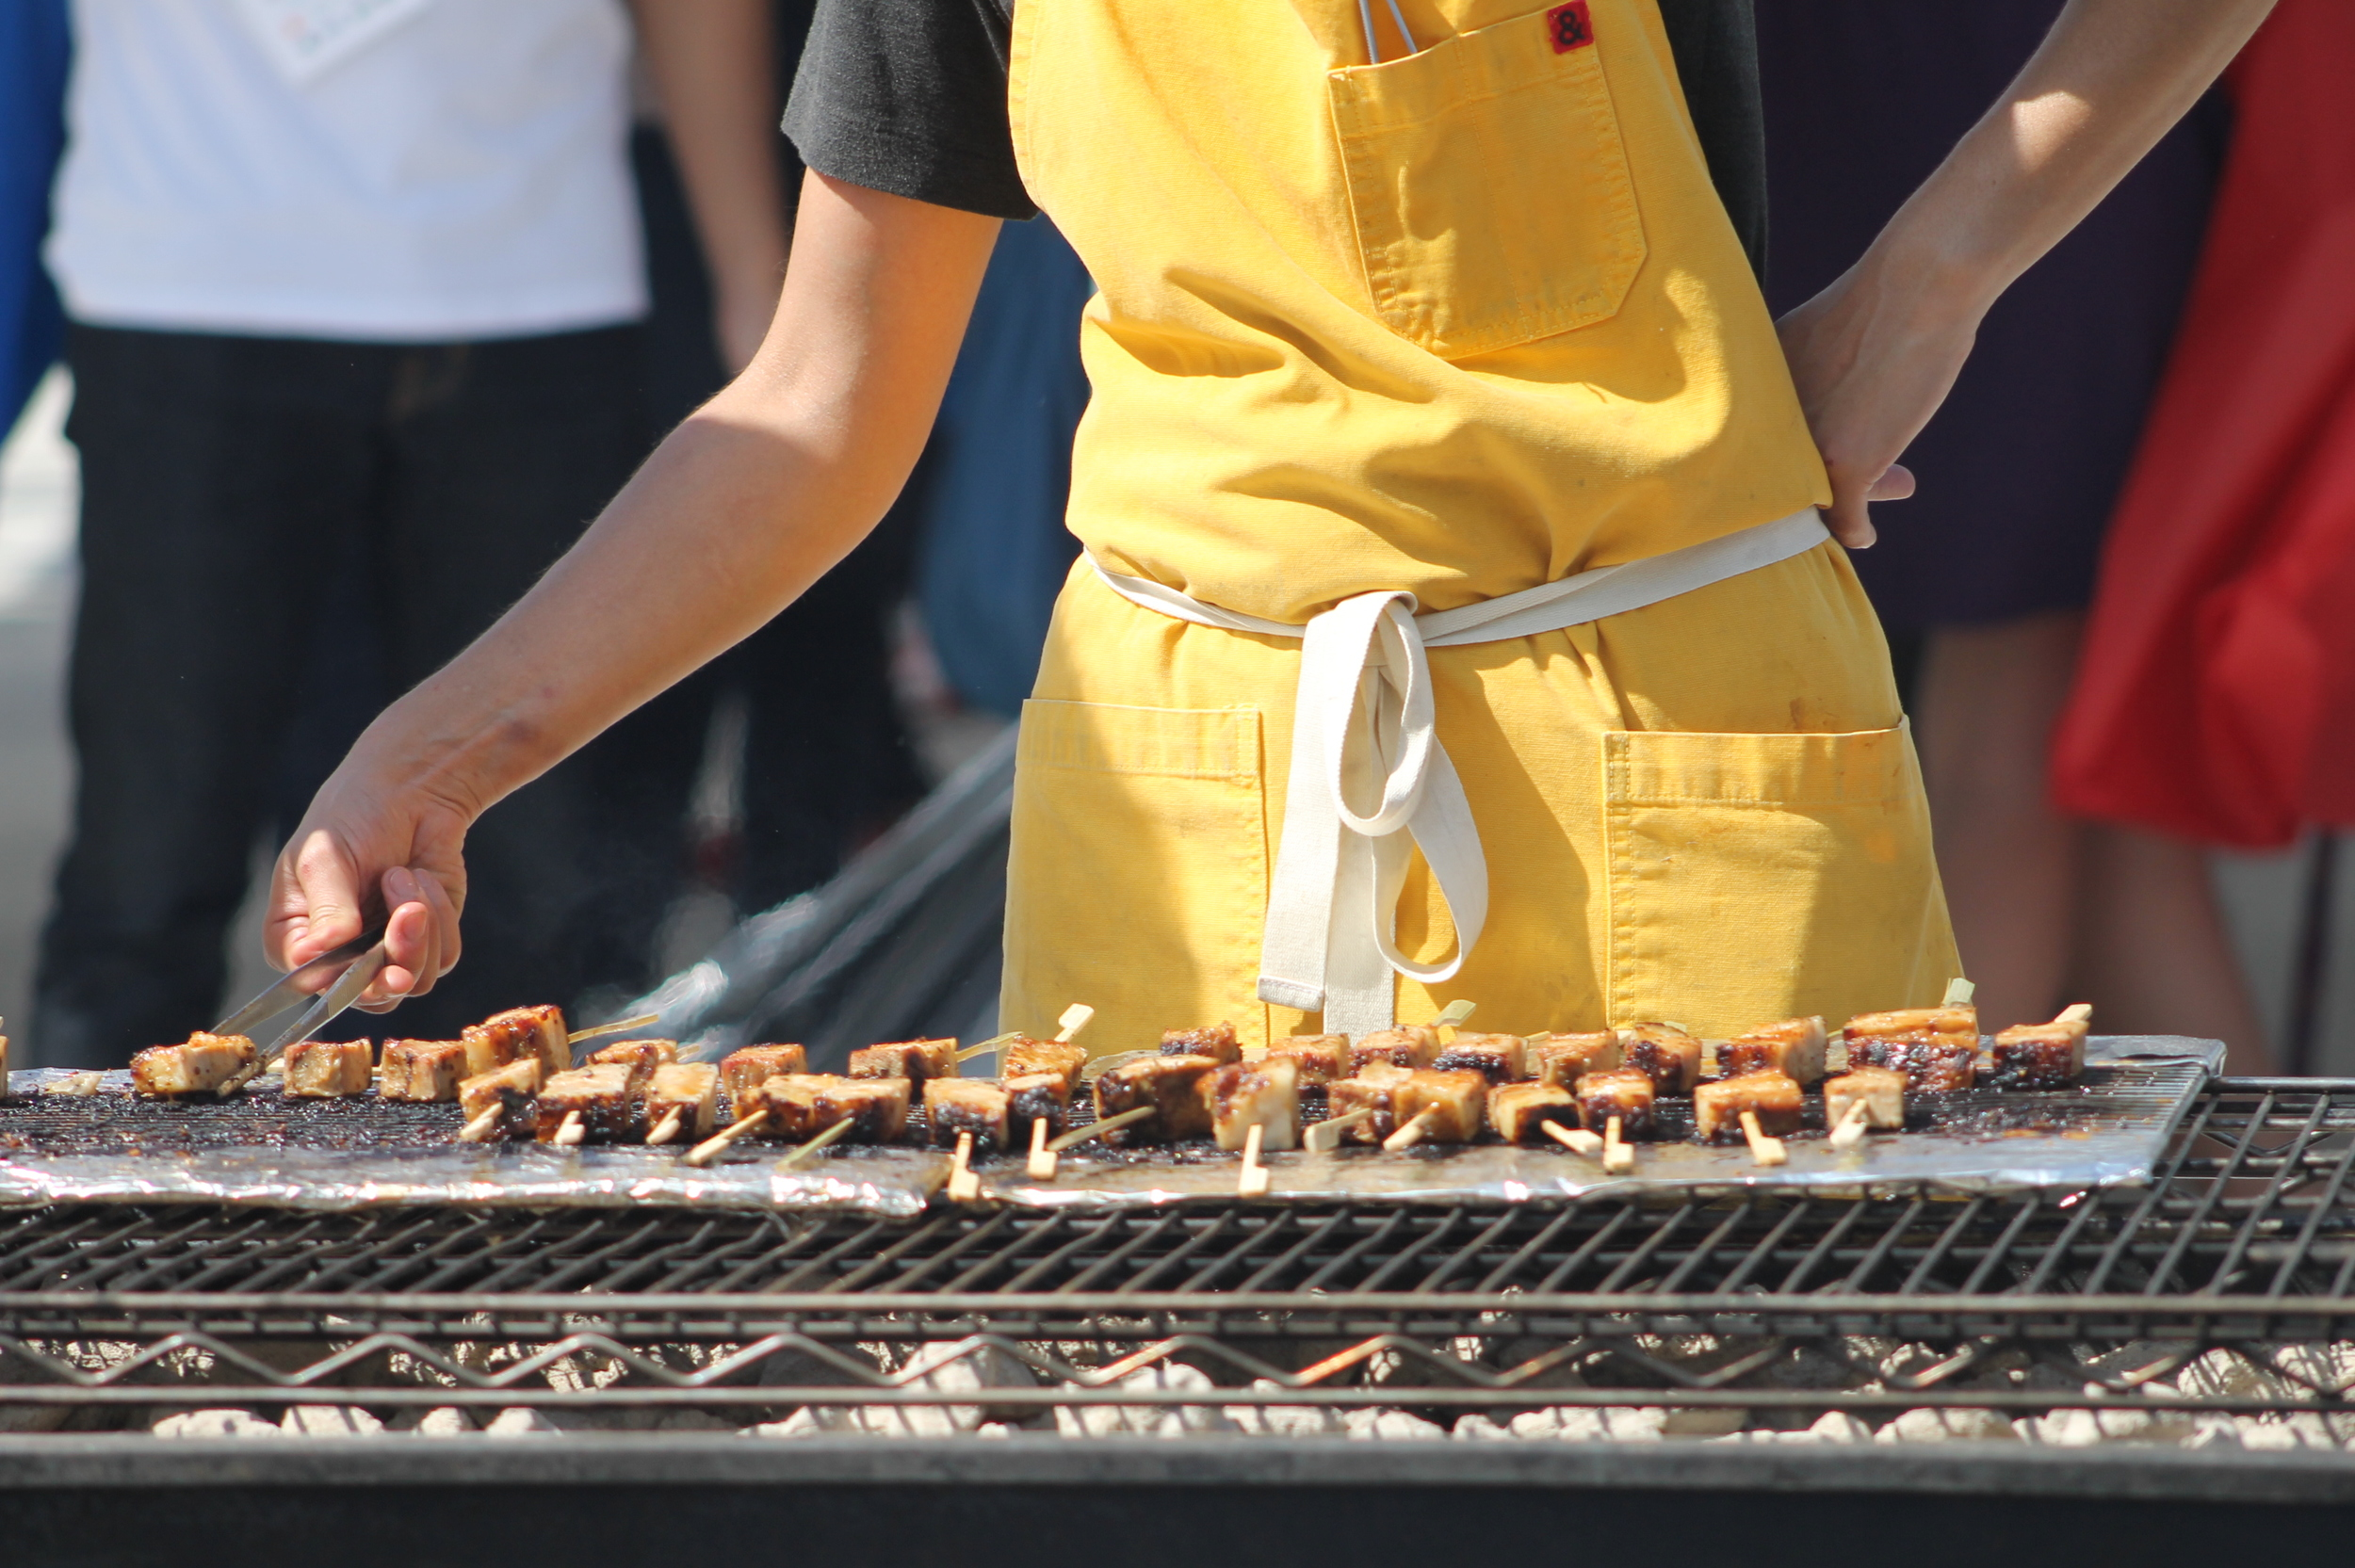 The team from Upland grilling veal ribs that will be later served with charred cherry tomato salsa.